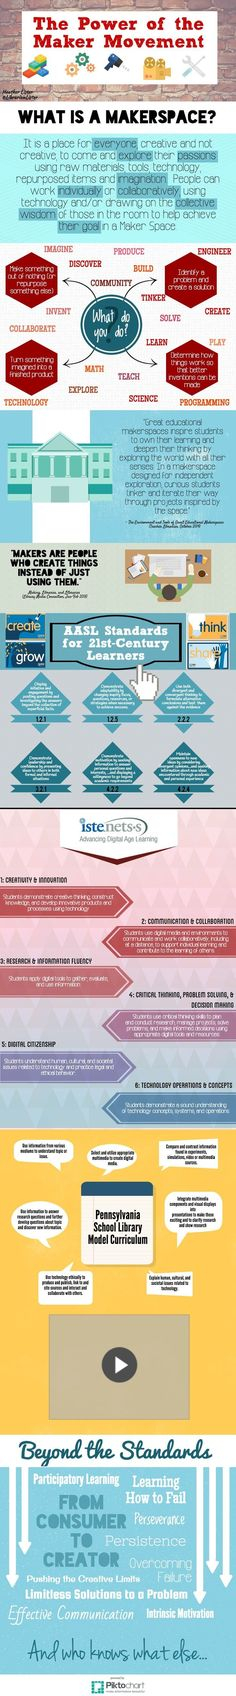 Makerspace | Infographic on school makerspaces that ties MakerEd with AASL & ISTE standards